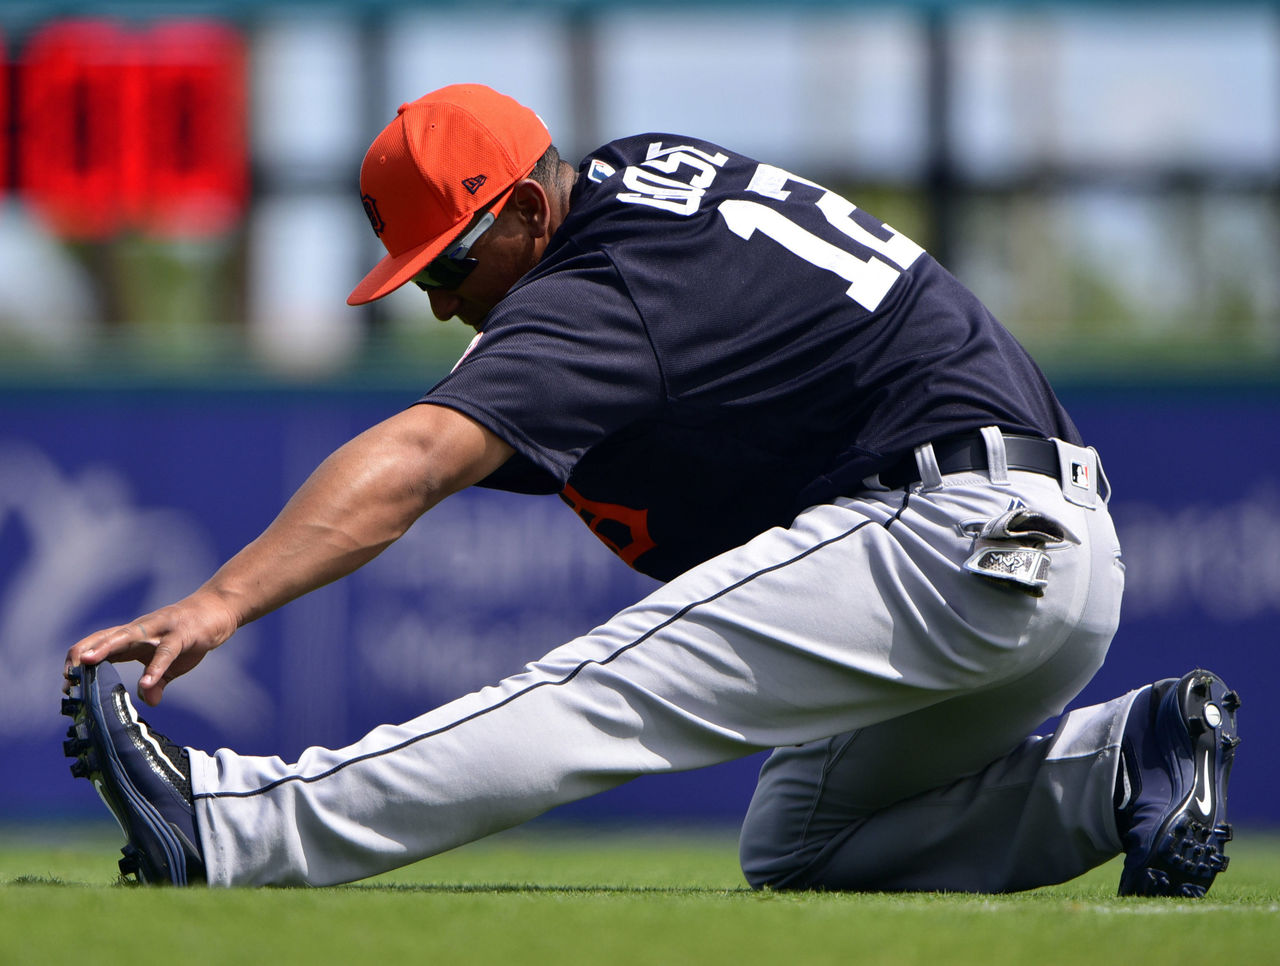 Cropped 2017 03 14t195432z 1486874079 nocid rtrmadp 3 mlb spring training detroit tigers at miami marlins